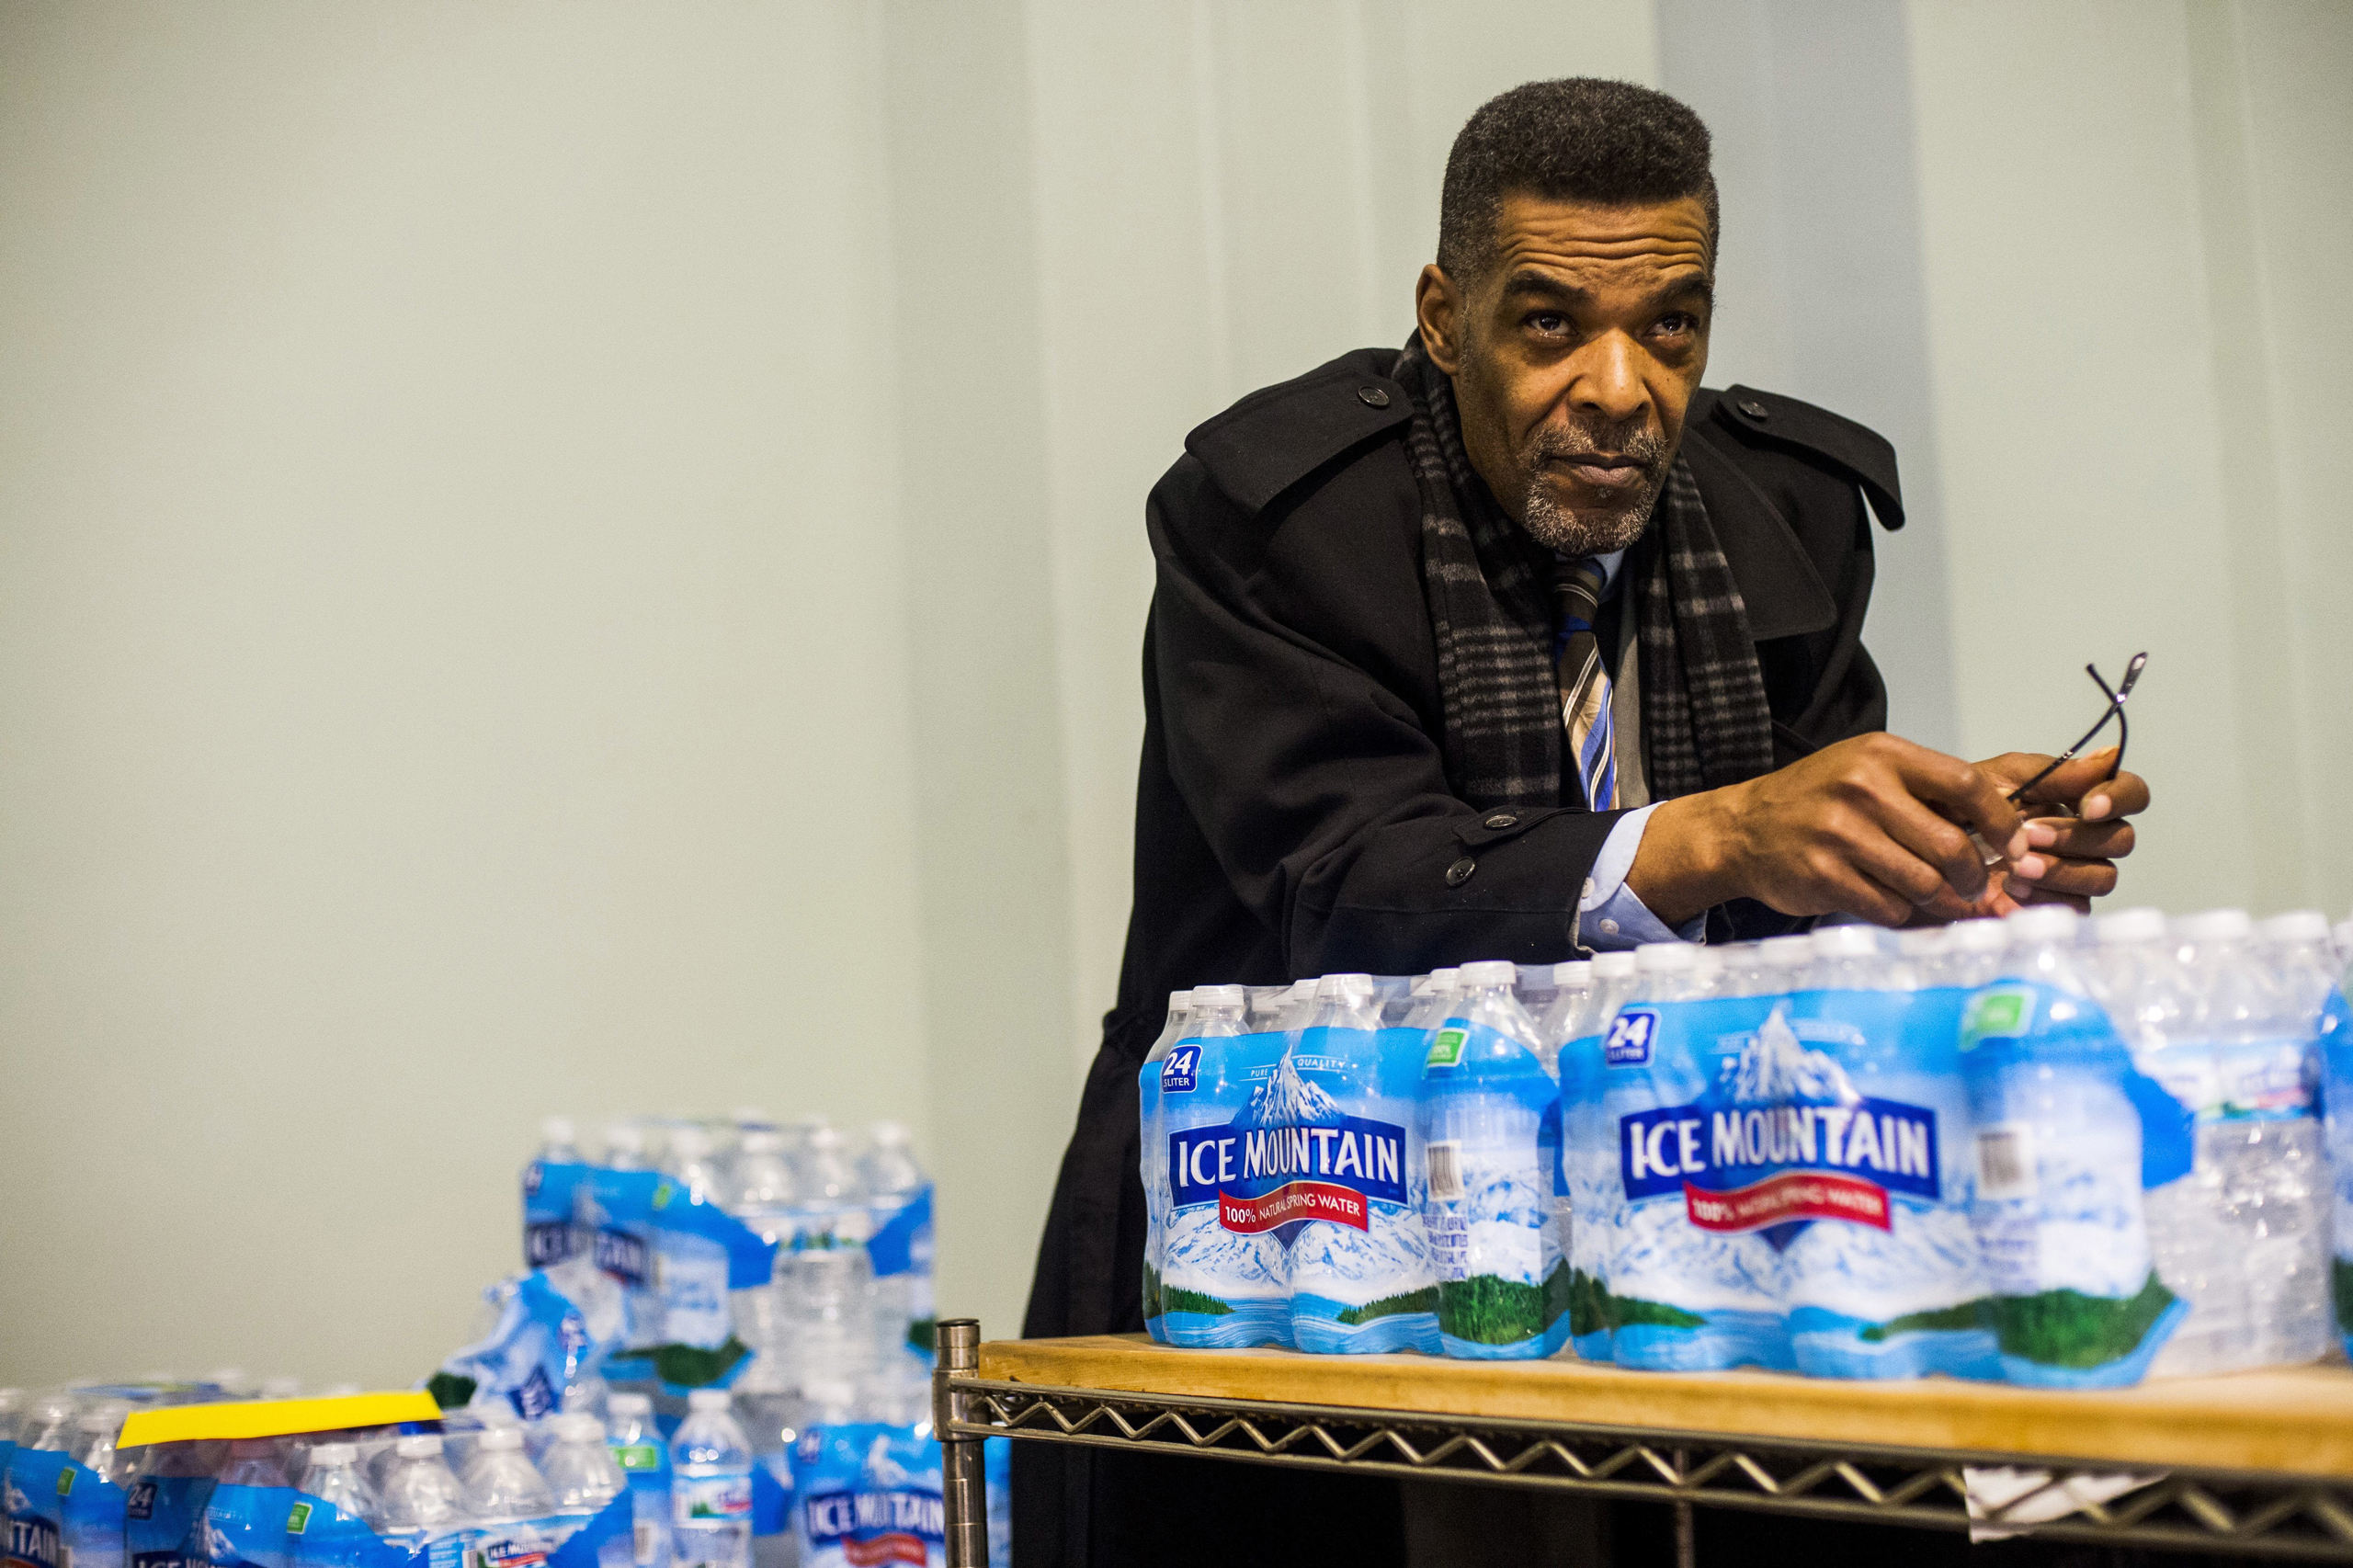 Flint City Councilman Eric Mays leans on a palette of water as he listens to health officials answer residents' questions during a Flint water town hall meeting at the University of Michigan-Flint Northbank Center in Flint, Mich., on Jan 12, 2017.